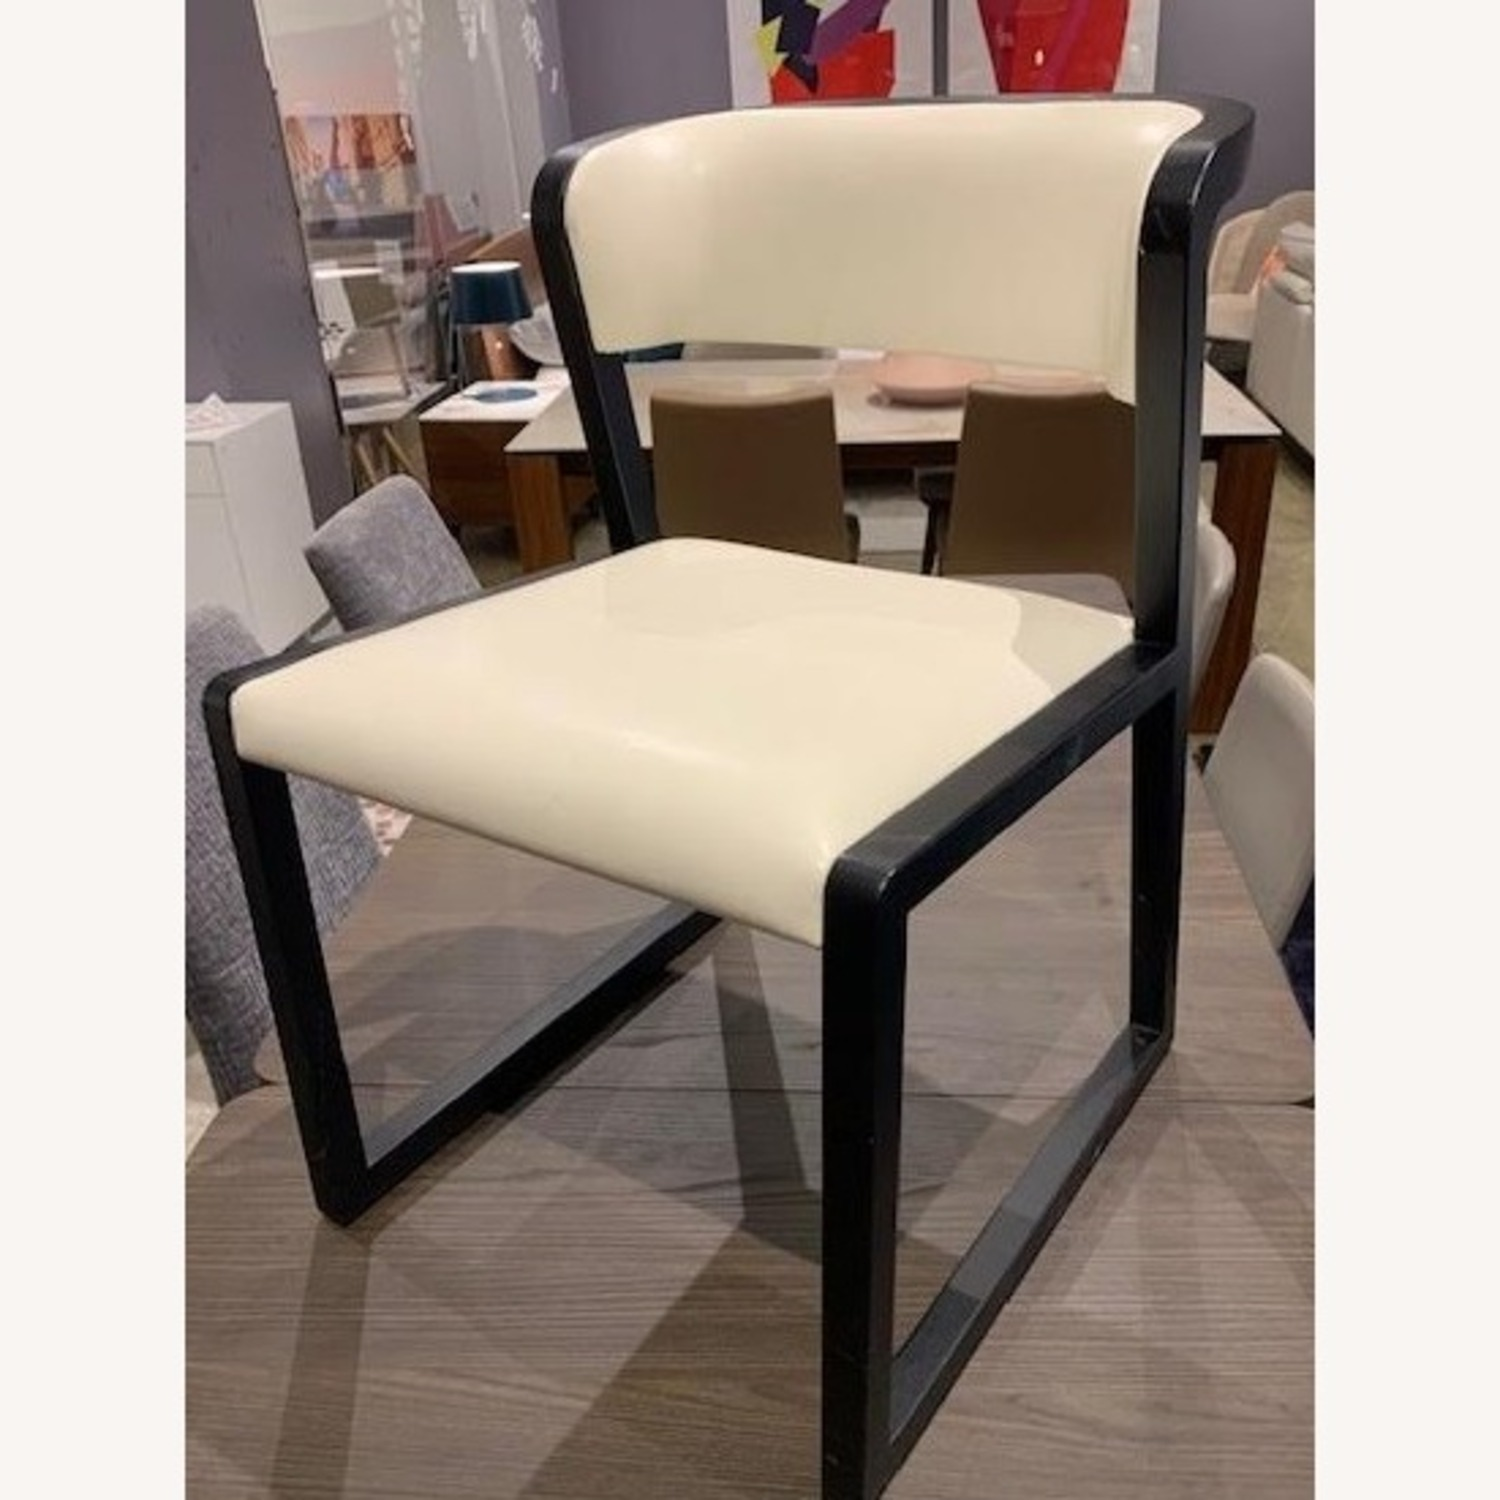 Camerich Ming Accent Chair - image-1